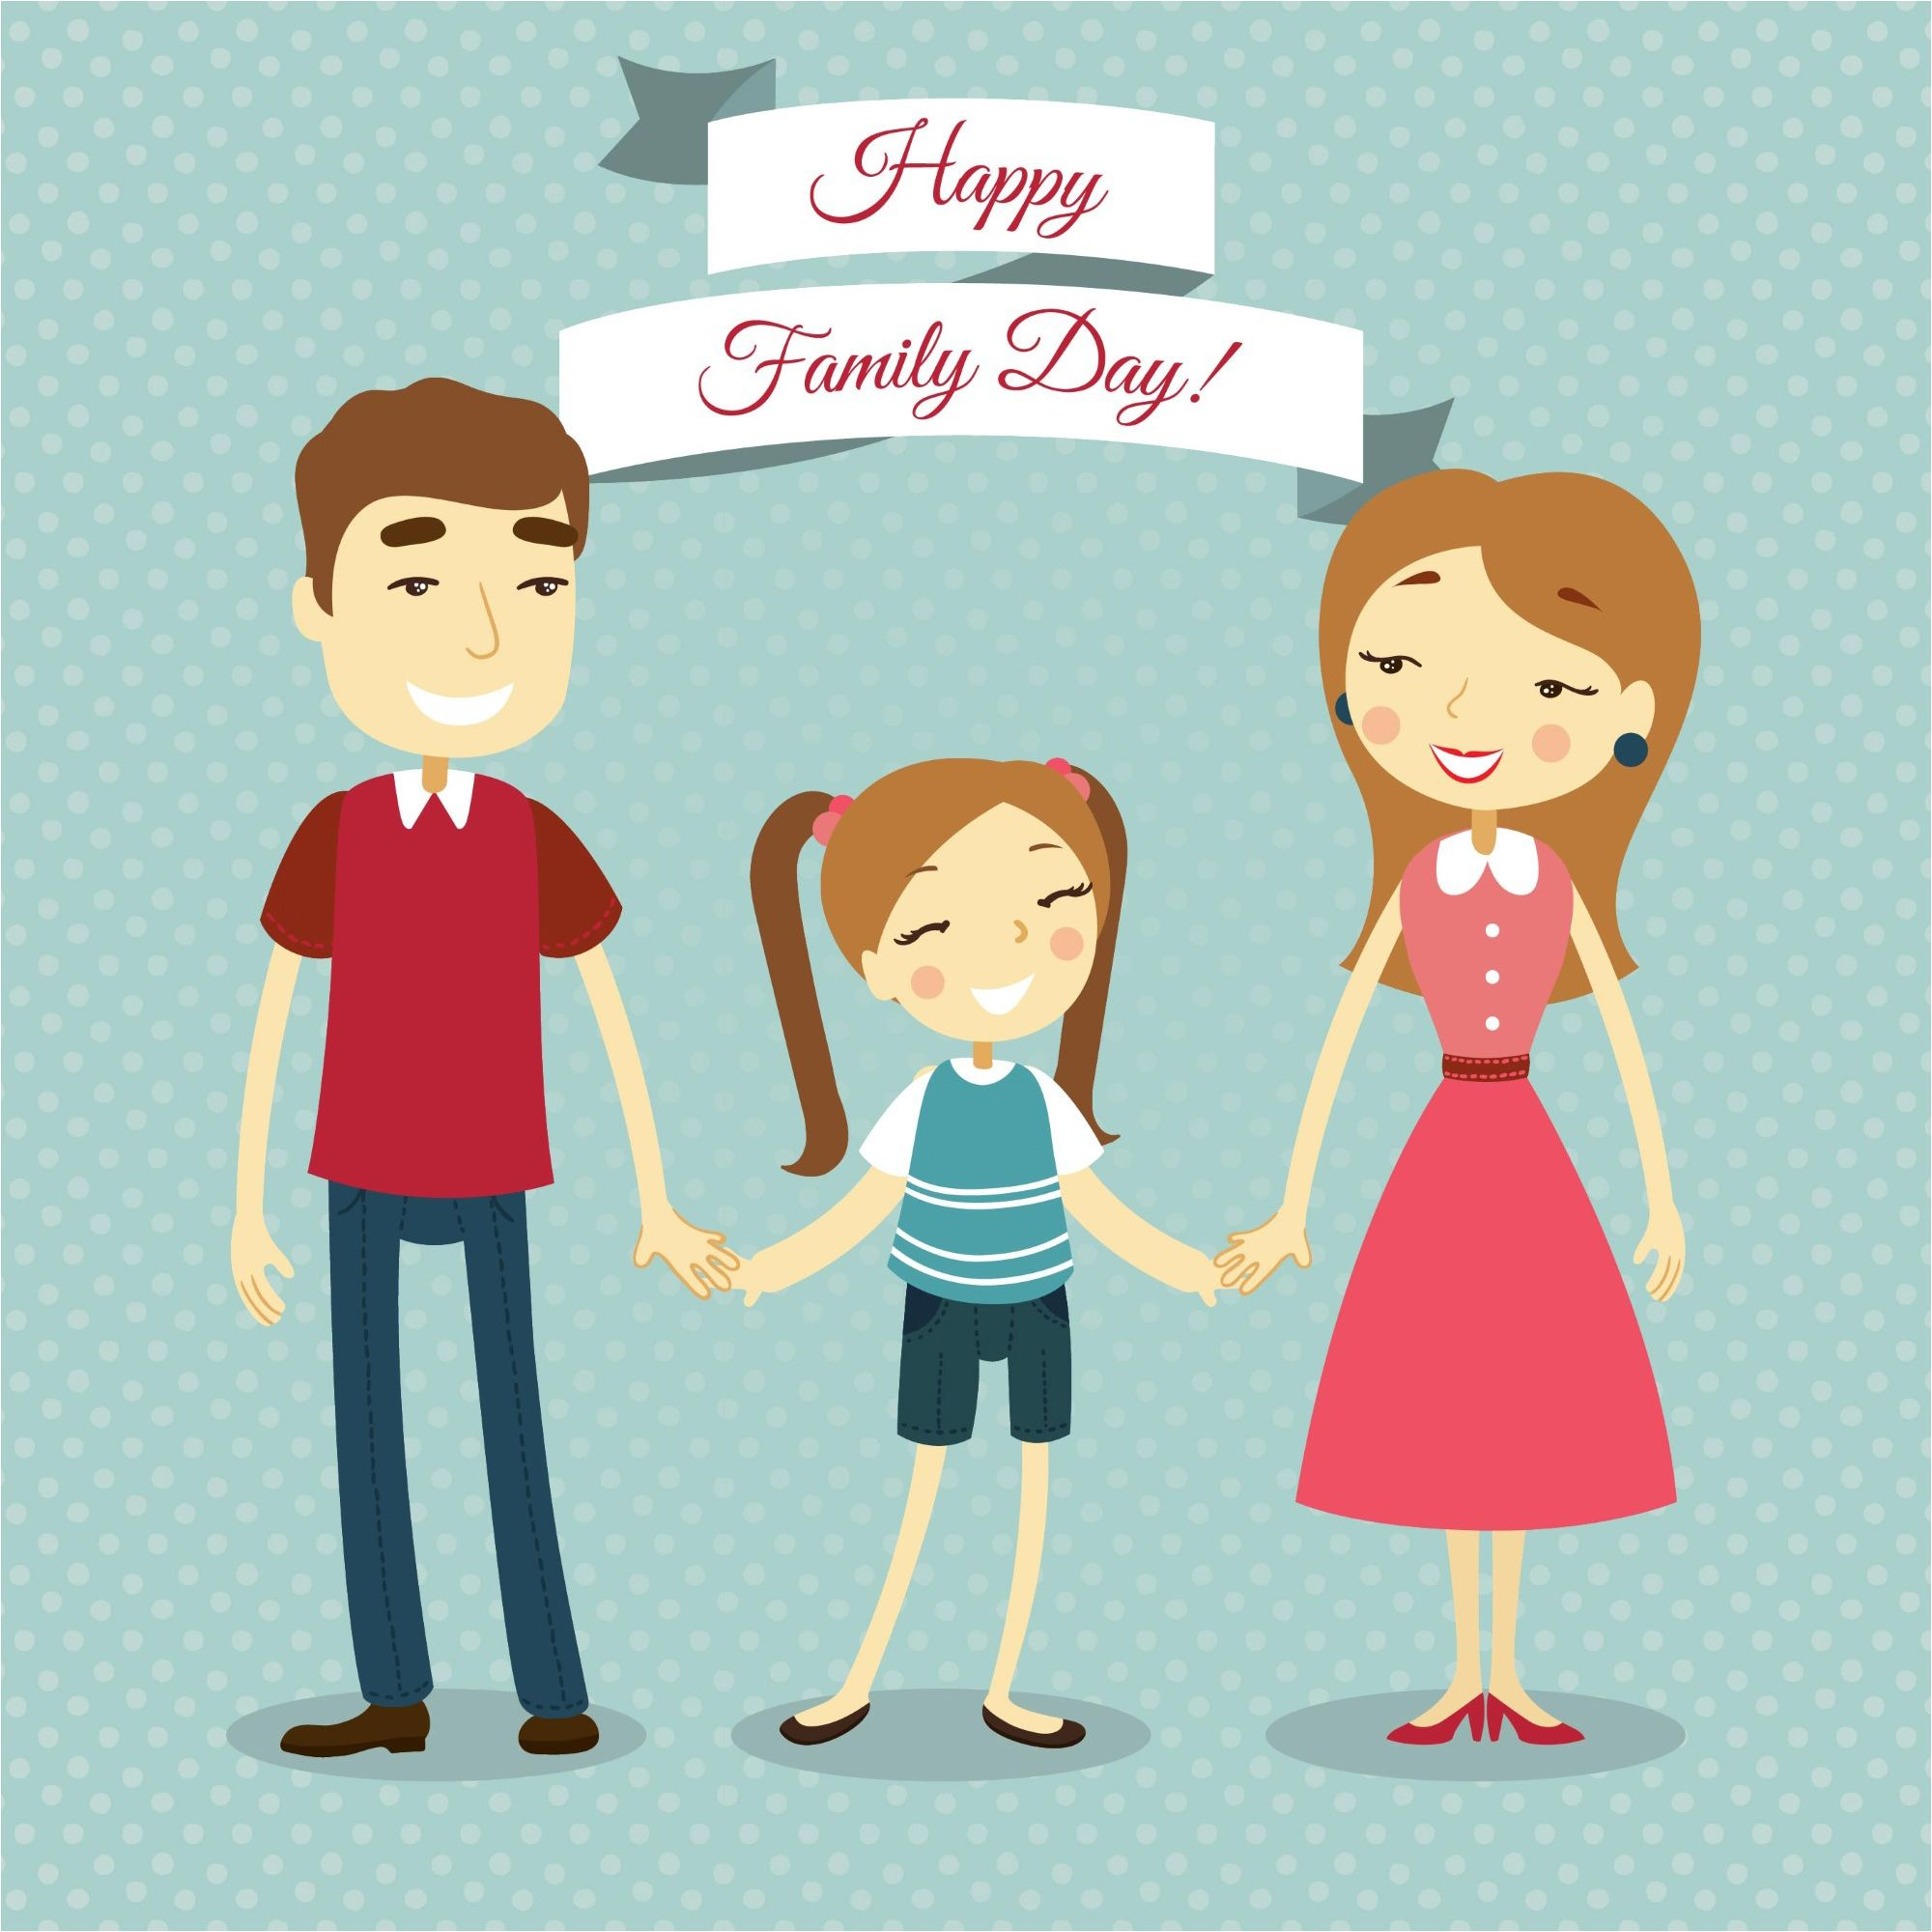 fdcfd4b3 Happy Lovely Family Day Background Wallpaper & Vectors | 500 Best ...